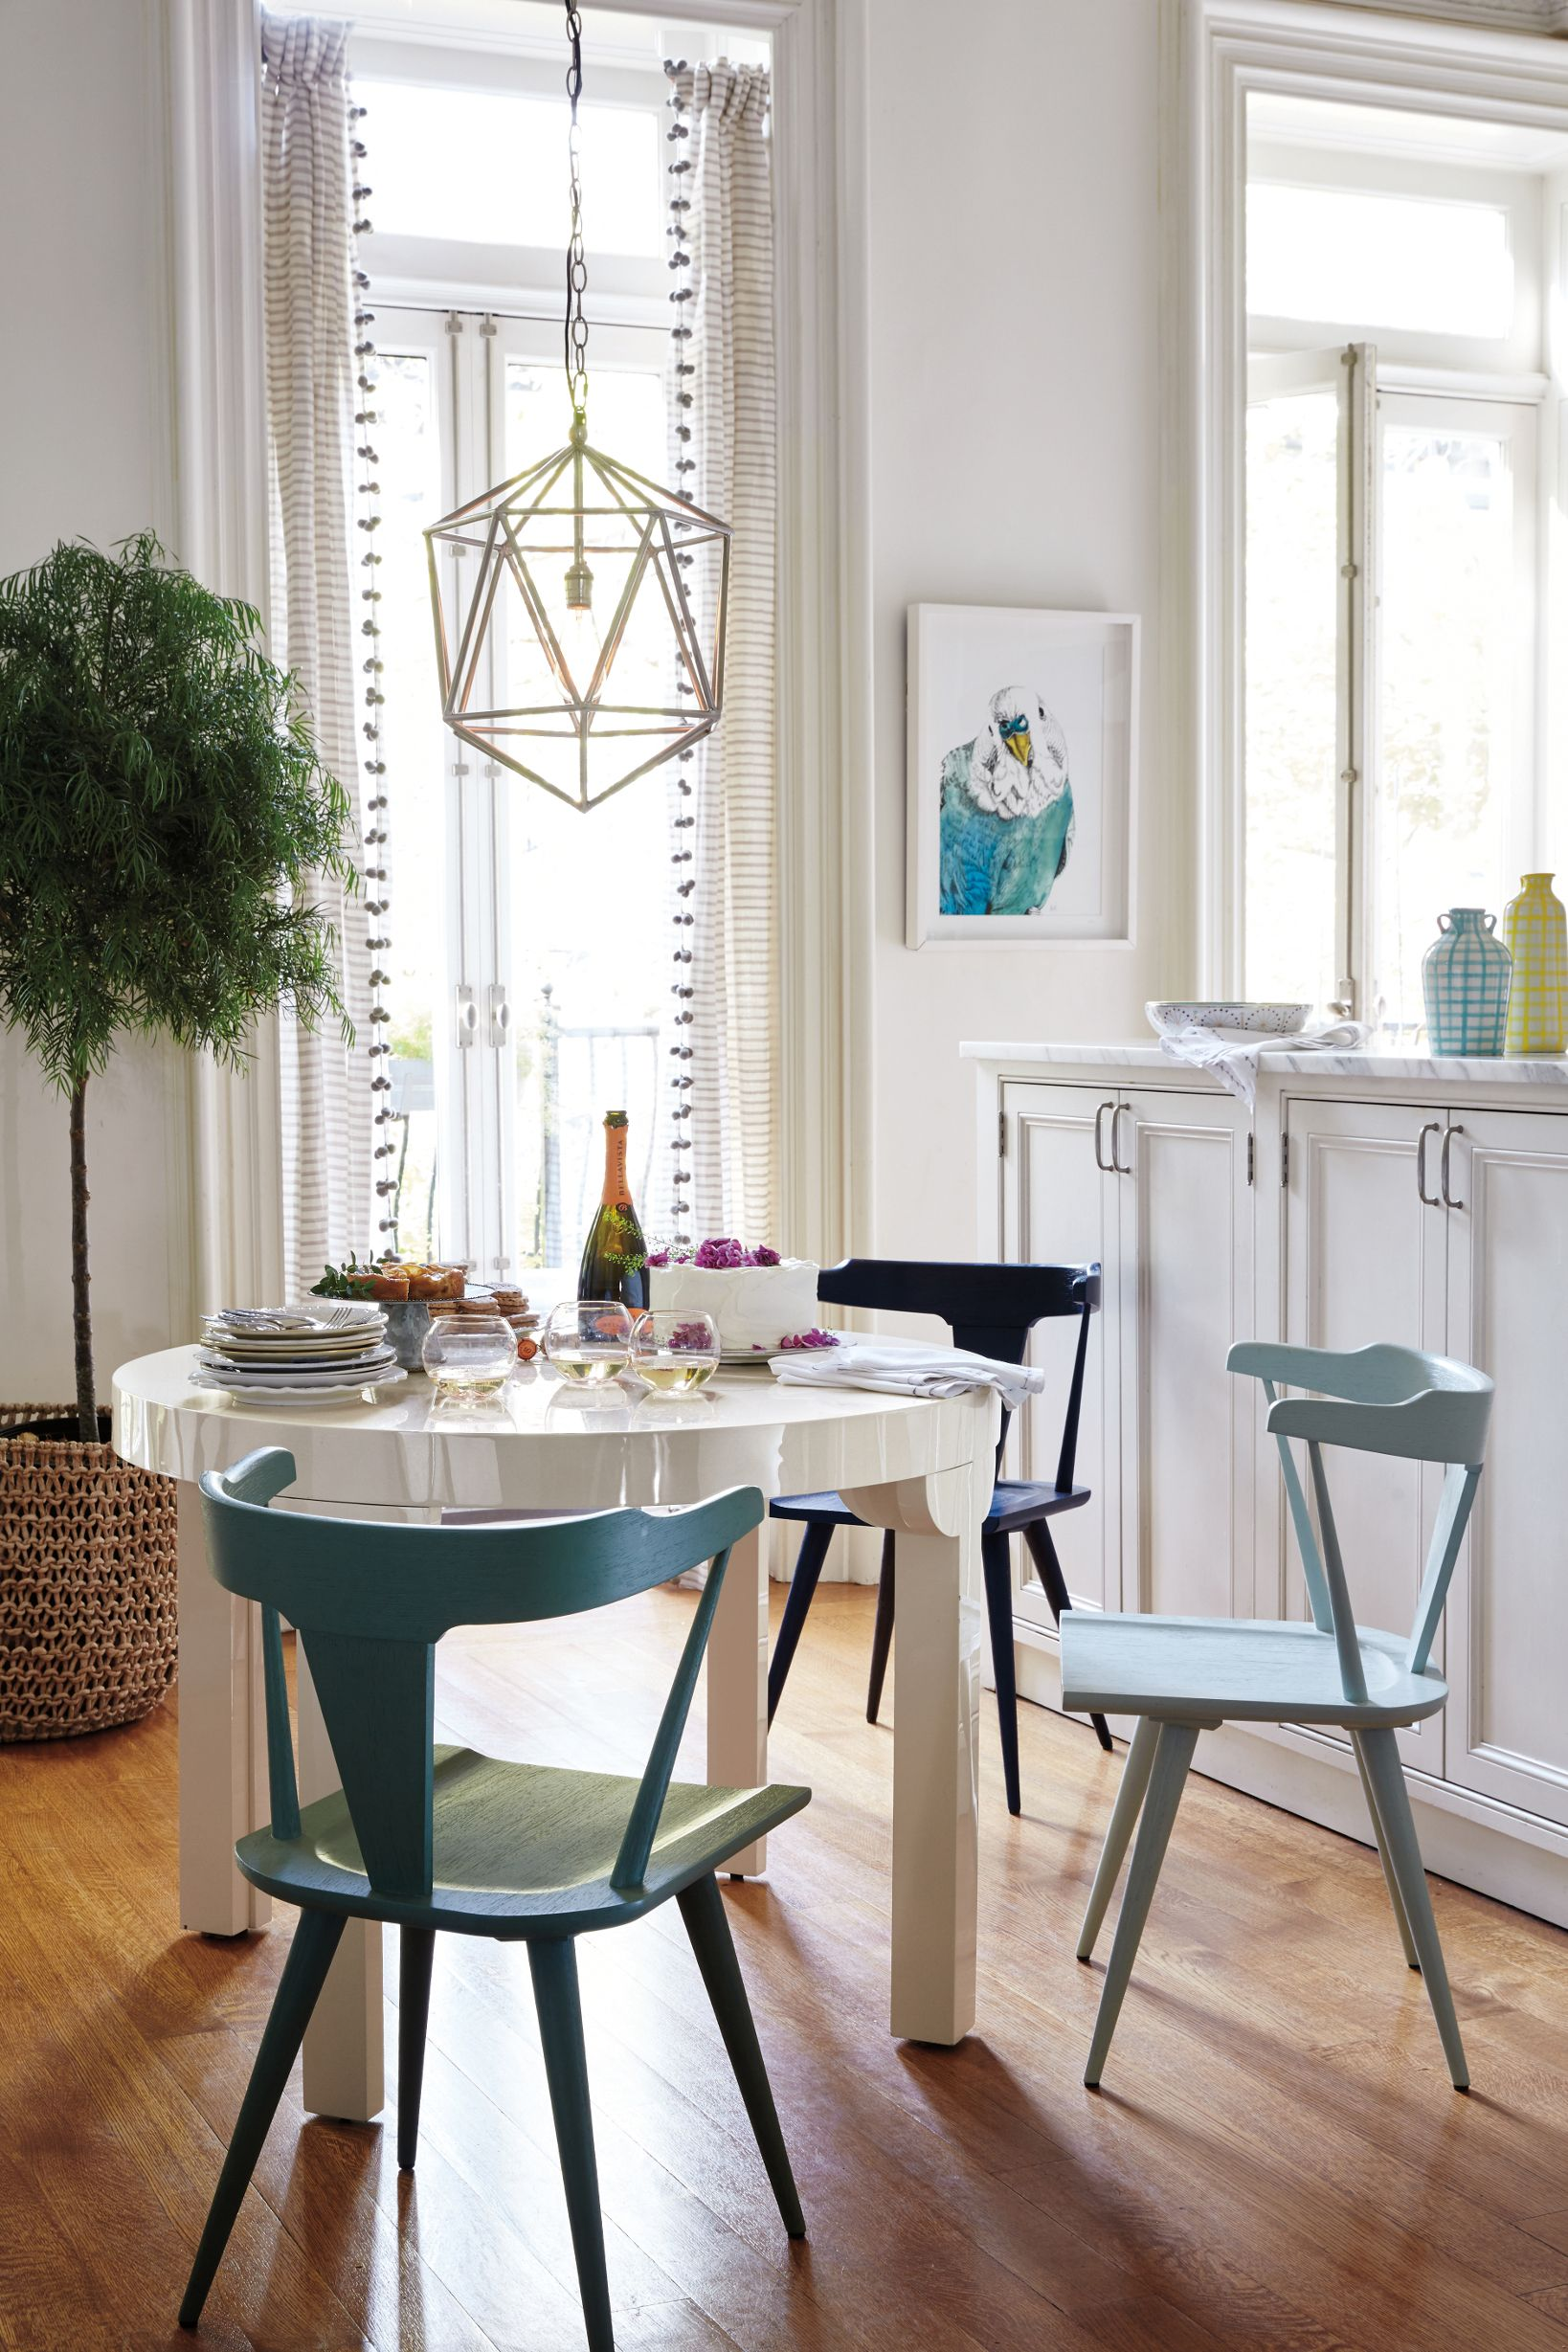 Ordinaire The Mackinder Dining Chairs From Our Spring House U0026 Home Collection.